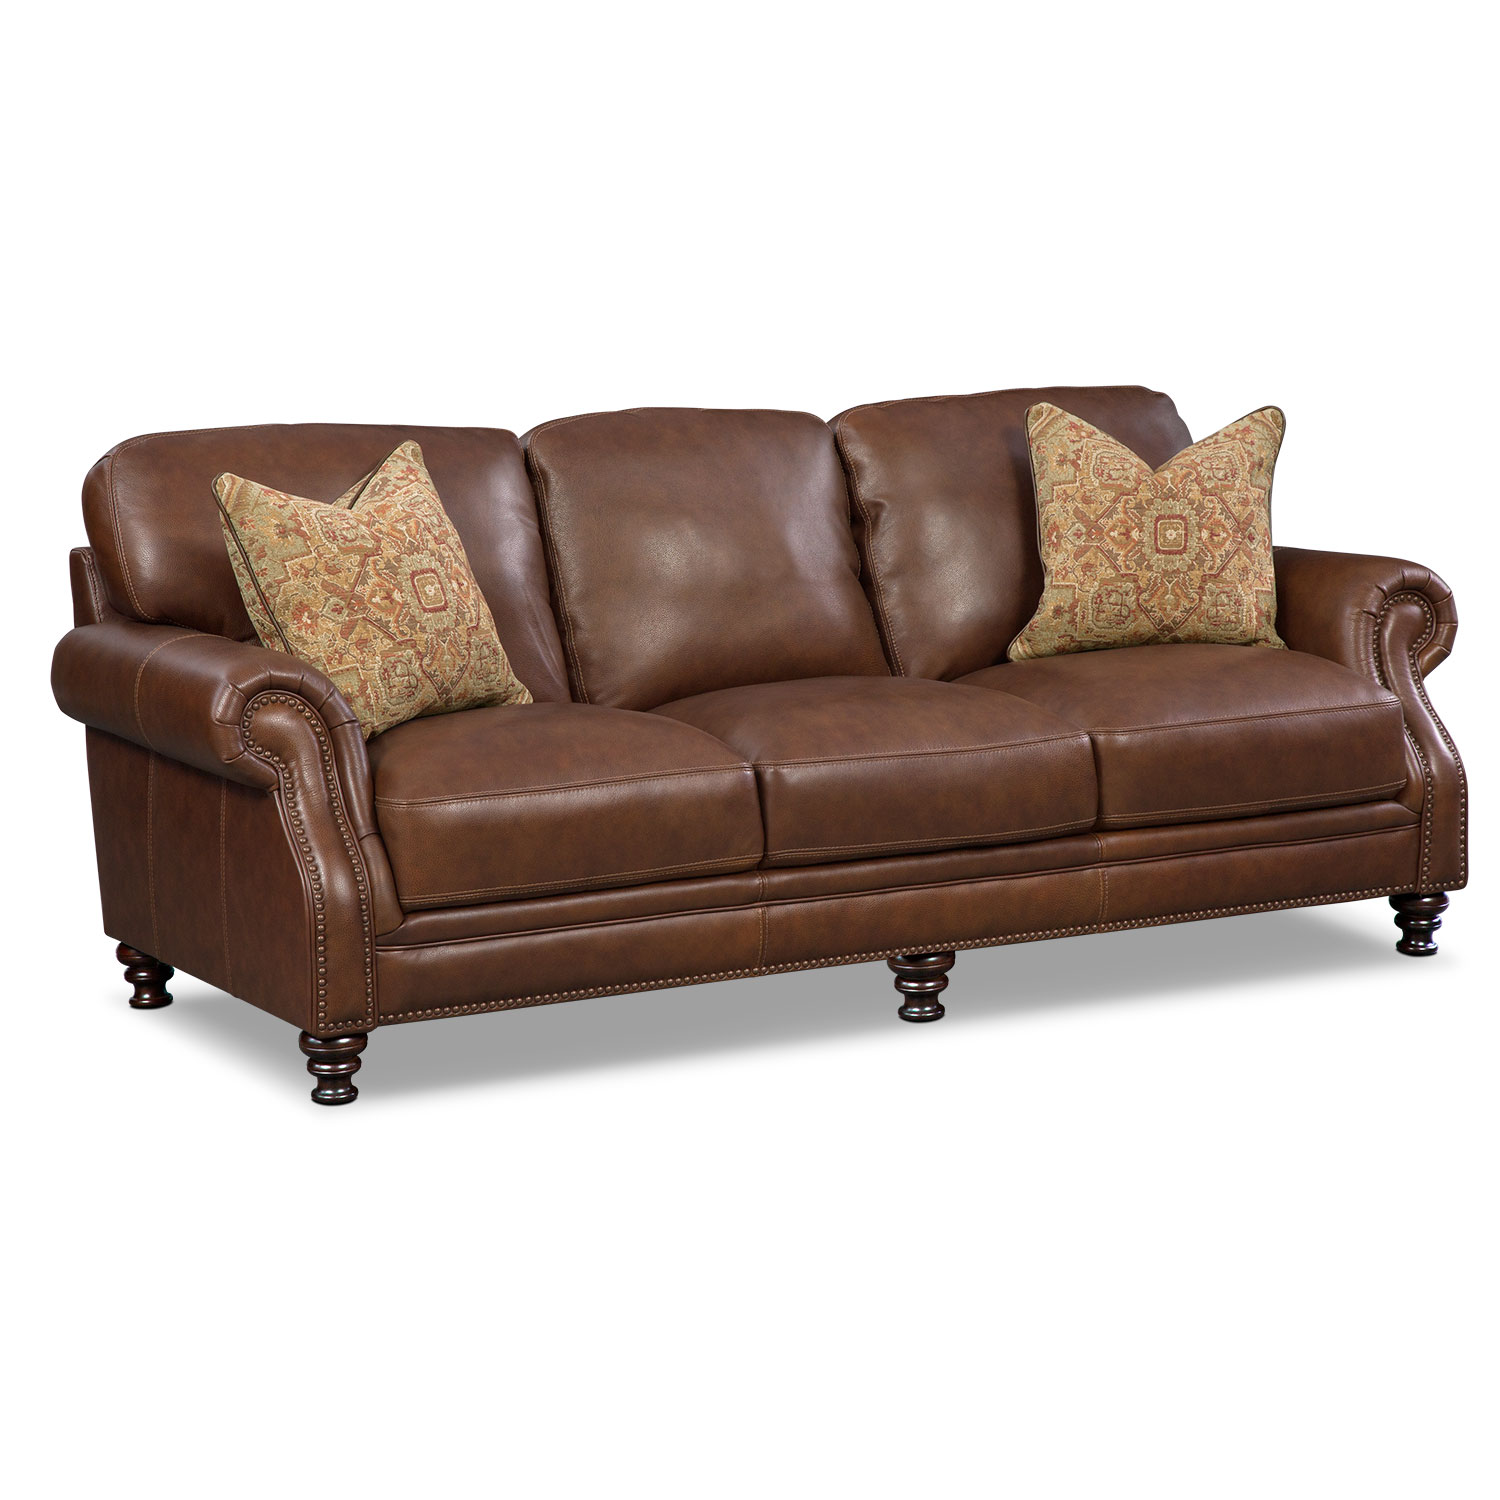 Carrington Tobacco Sofa